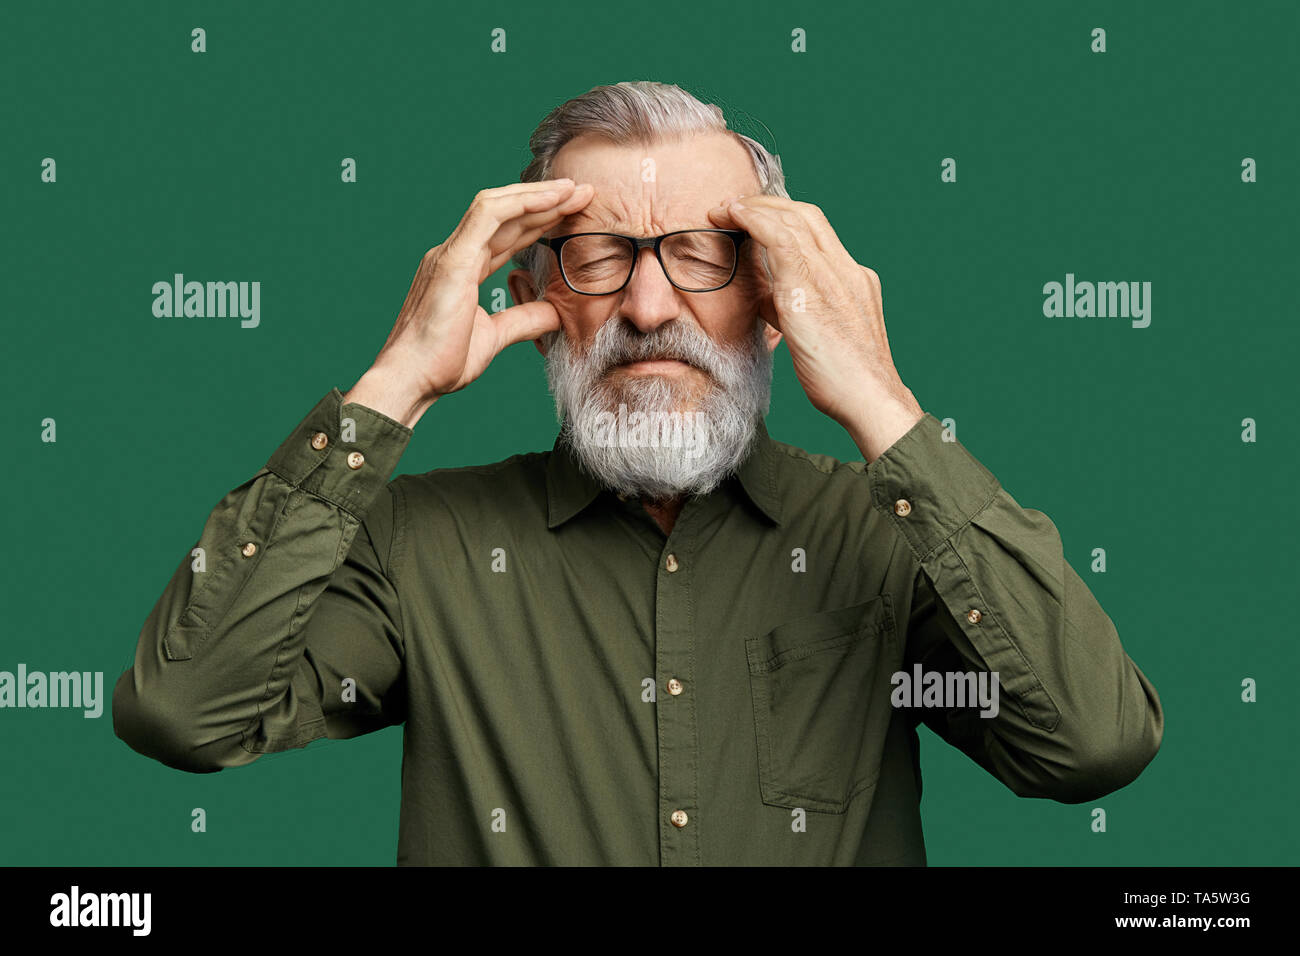 unhappy man with closed eyes trying to remember some information, facts, holding his temples, man with gray beard has lost his memory. isolated green  - Stock Image